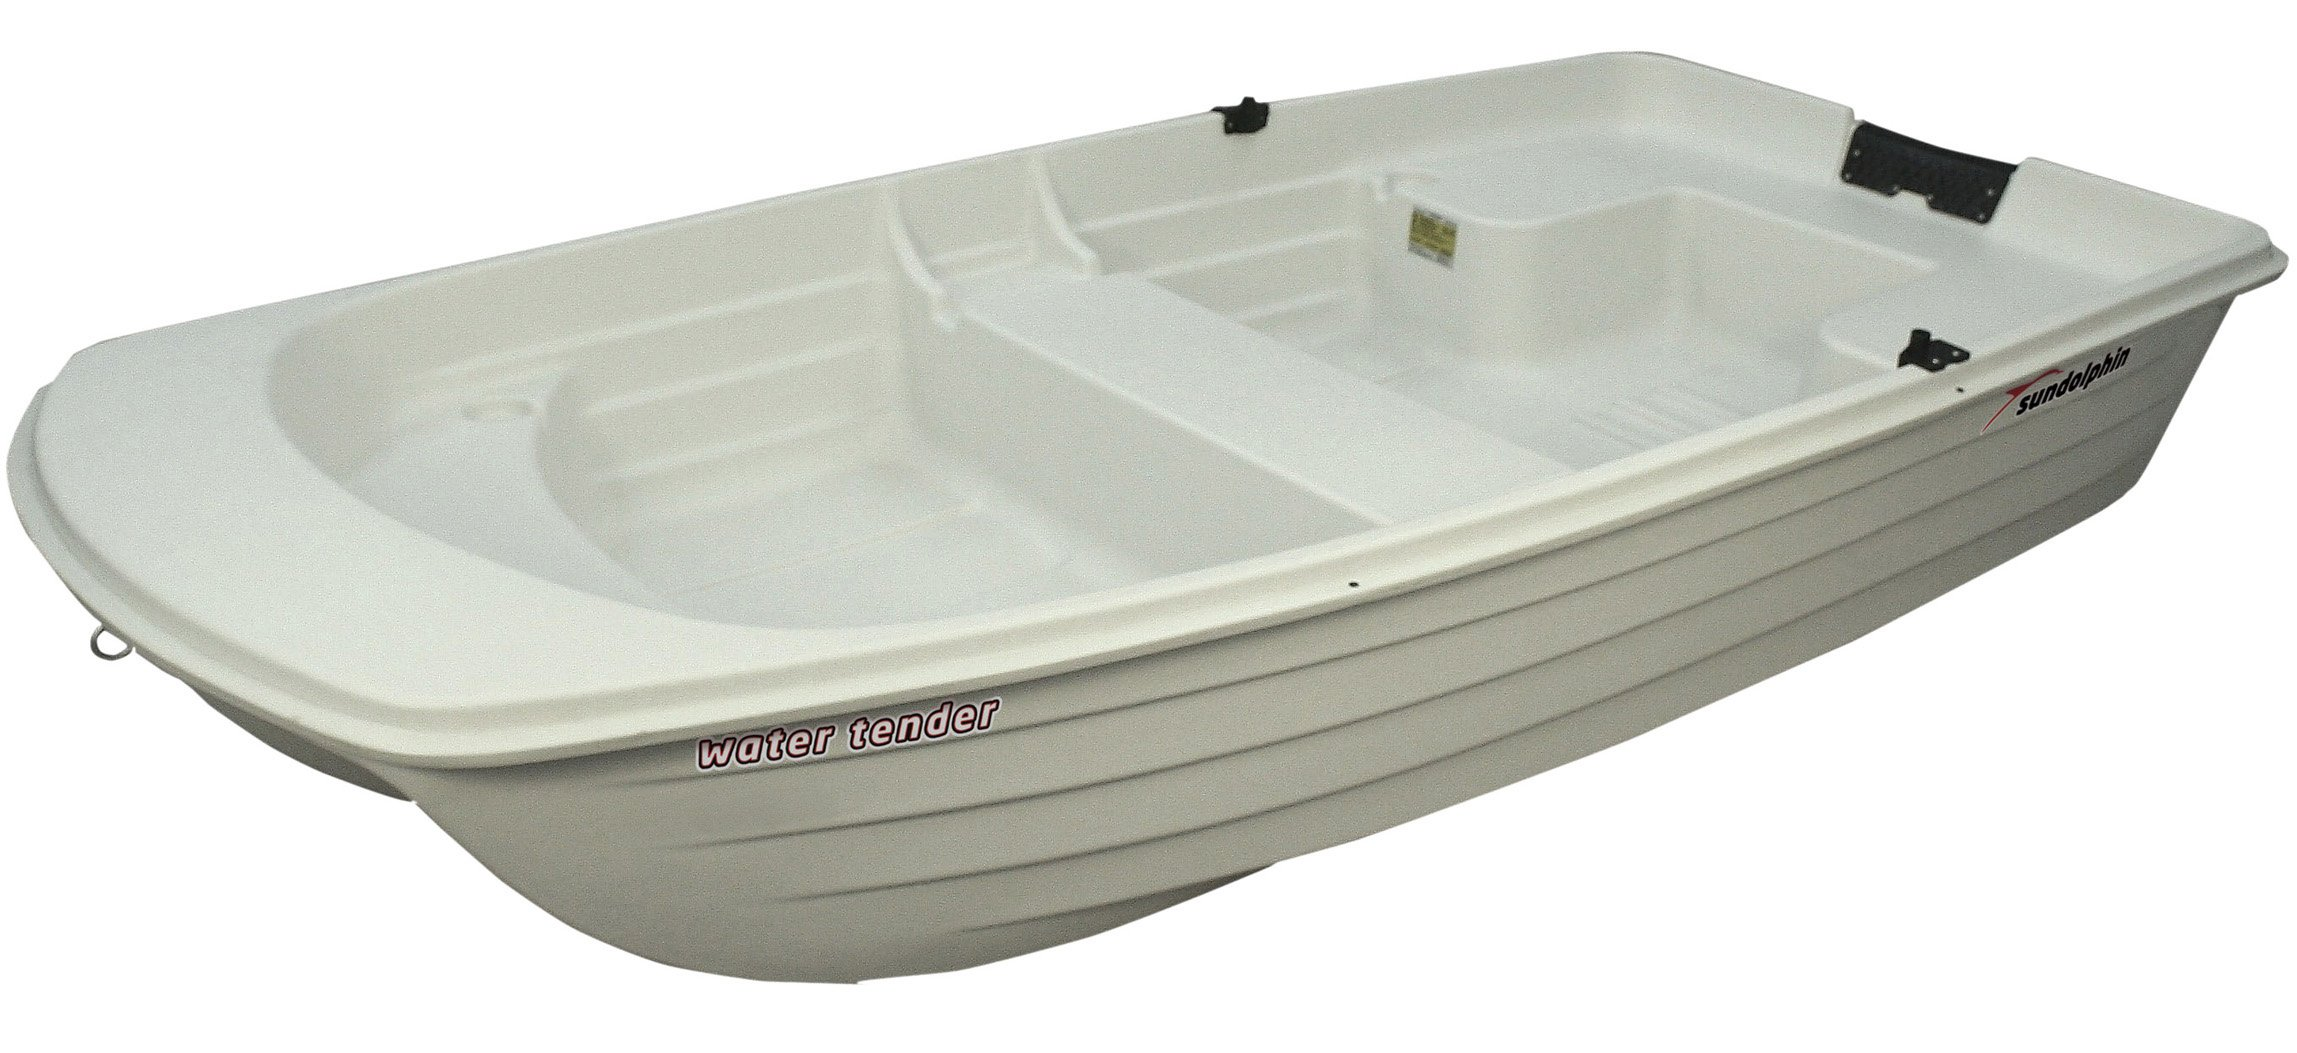 Sun Dolphin Water Tender Row Boat (White, 9.4-Feet) by Sun Dolphin